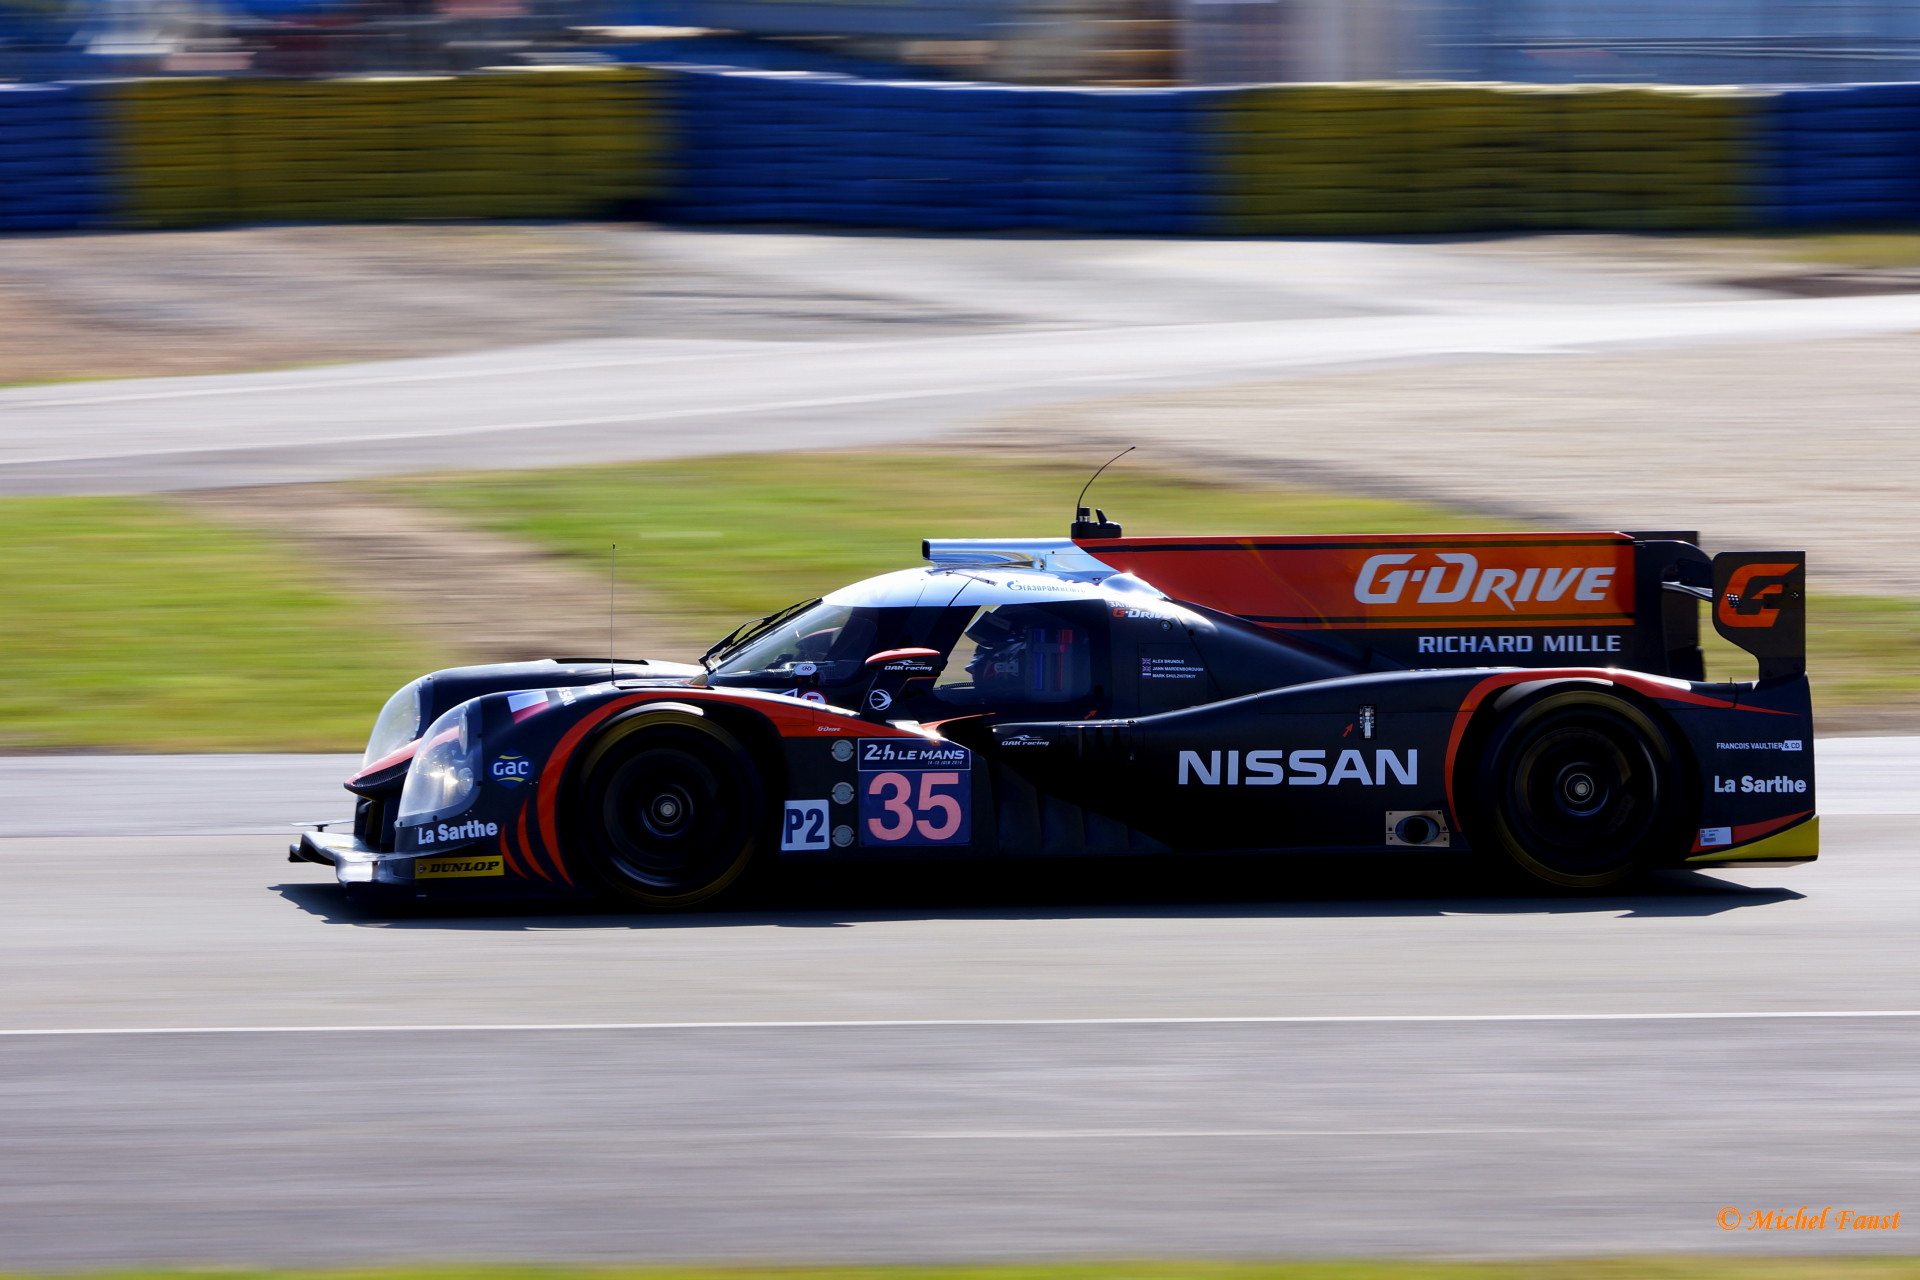 OAK Racing Ligier JS P2 Nissan - Brundle / Mardenborough / Shulzhitskiy - Le Mans 2014 test day